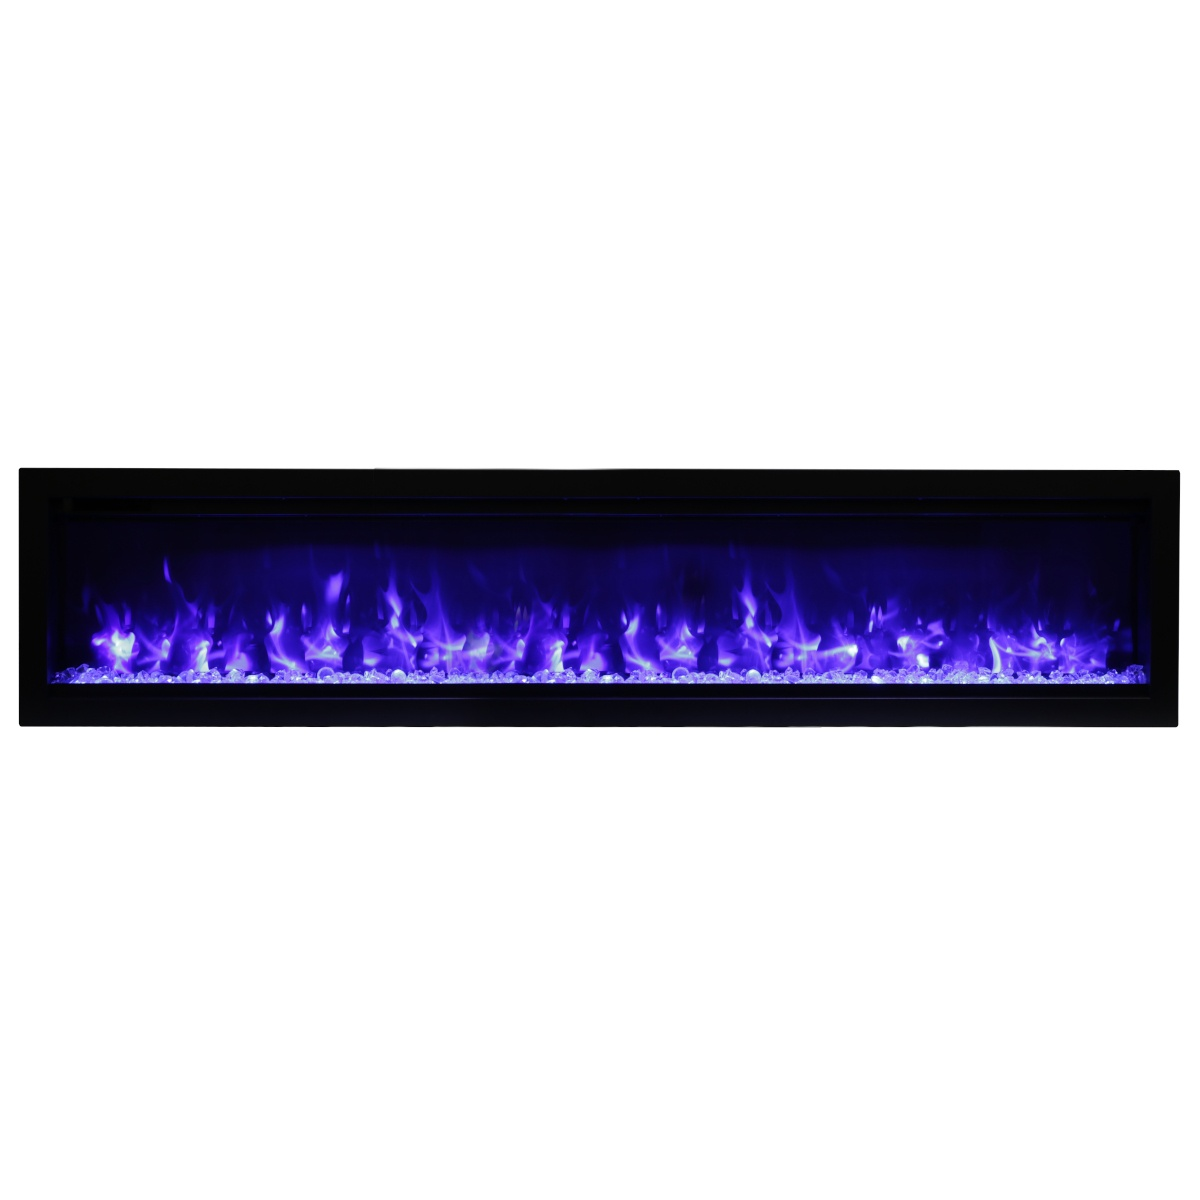 amantii SYM 74 contemporary electric fireplace wall insert with glass embers and blue flames